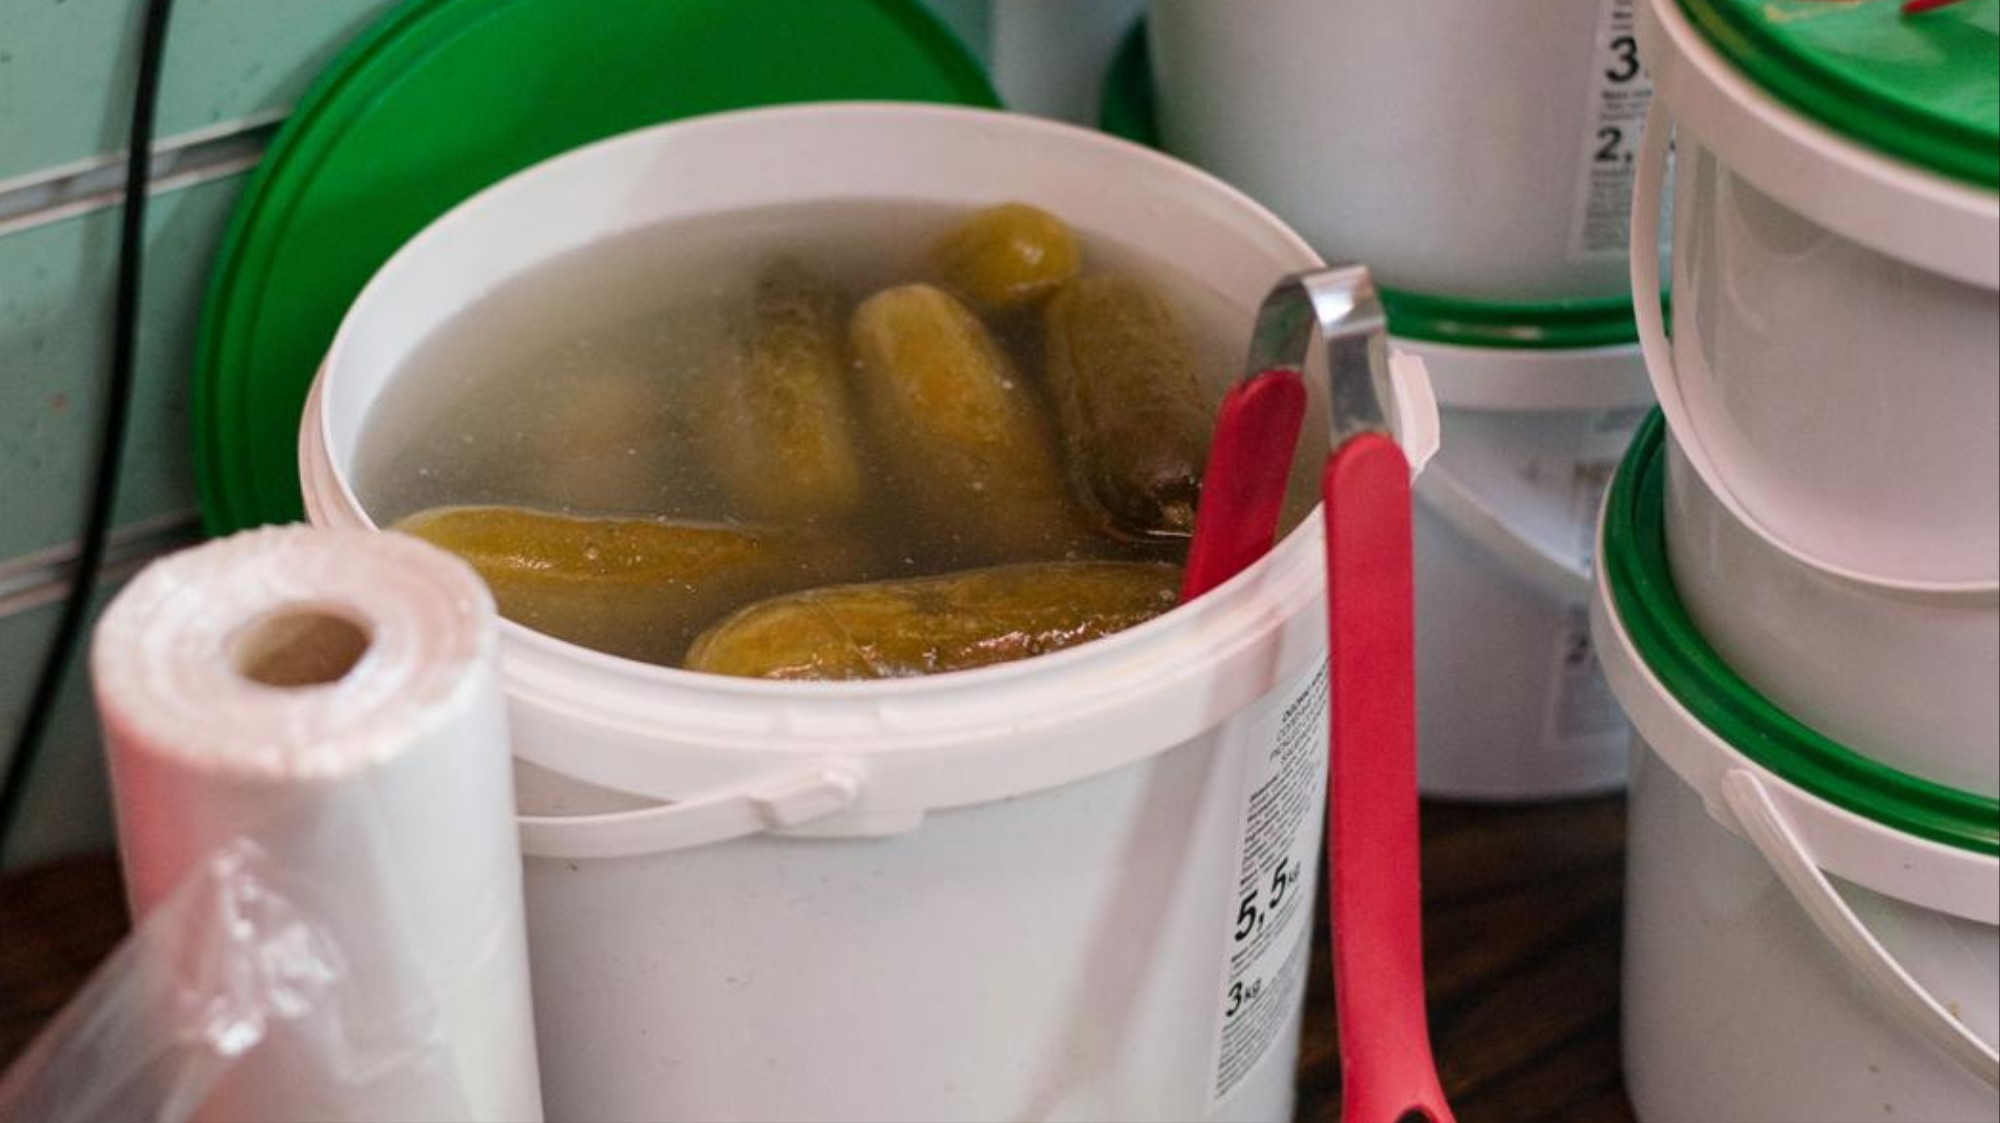 Pickle Brine Is Why the Polish Don't Get Hangovers - VICE